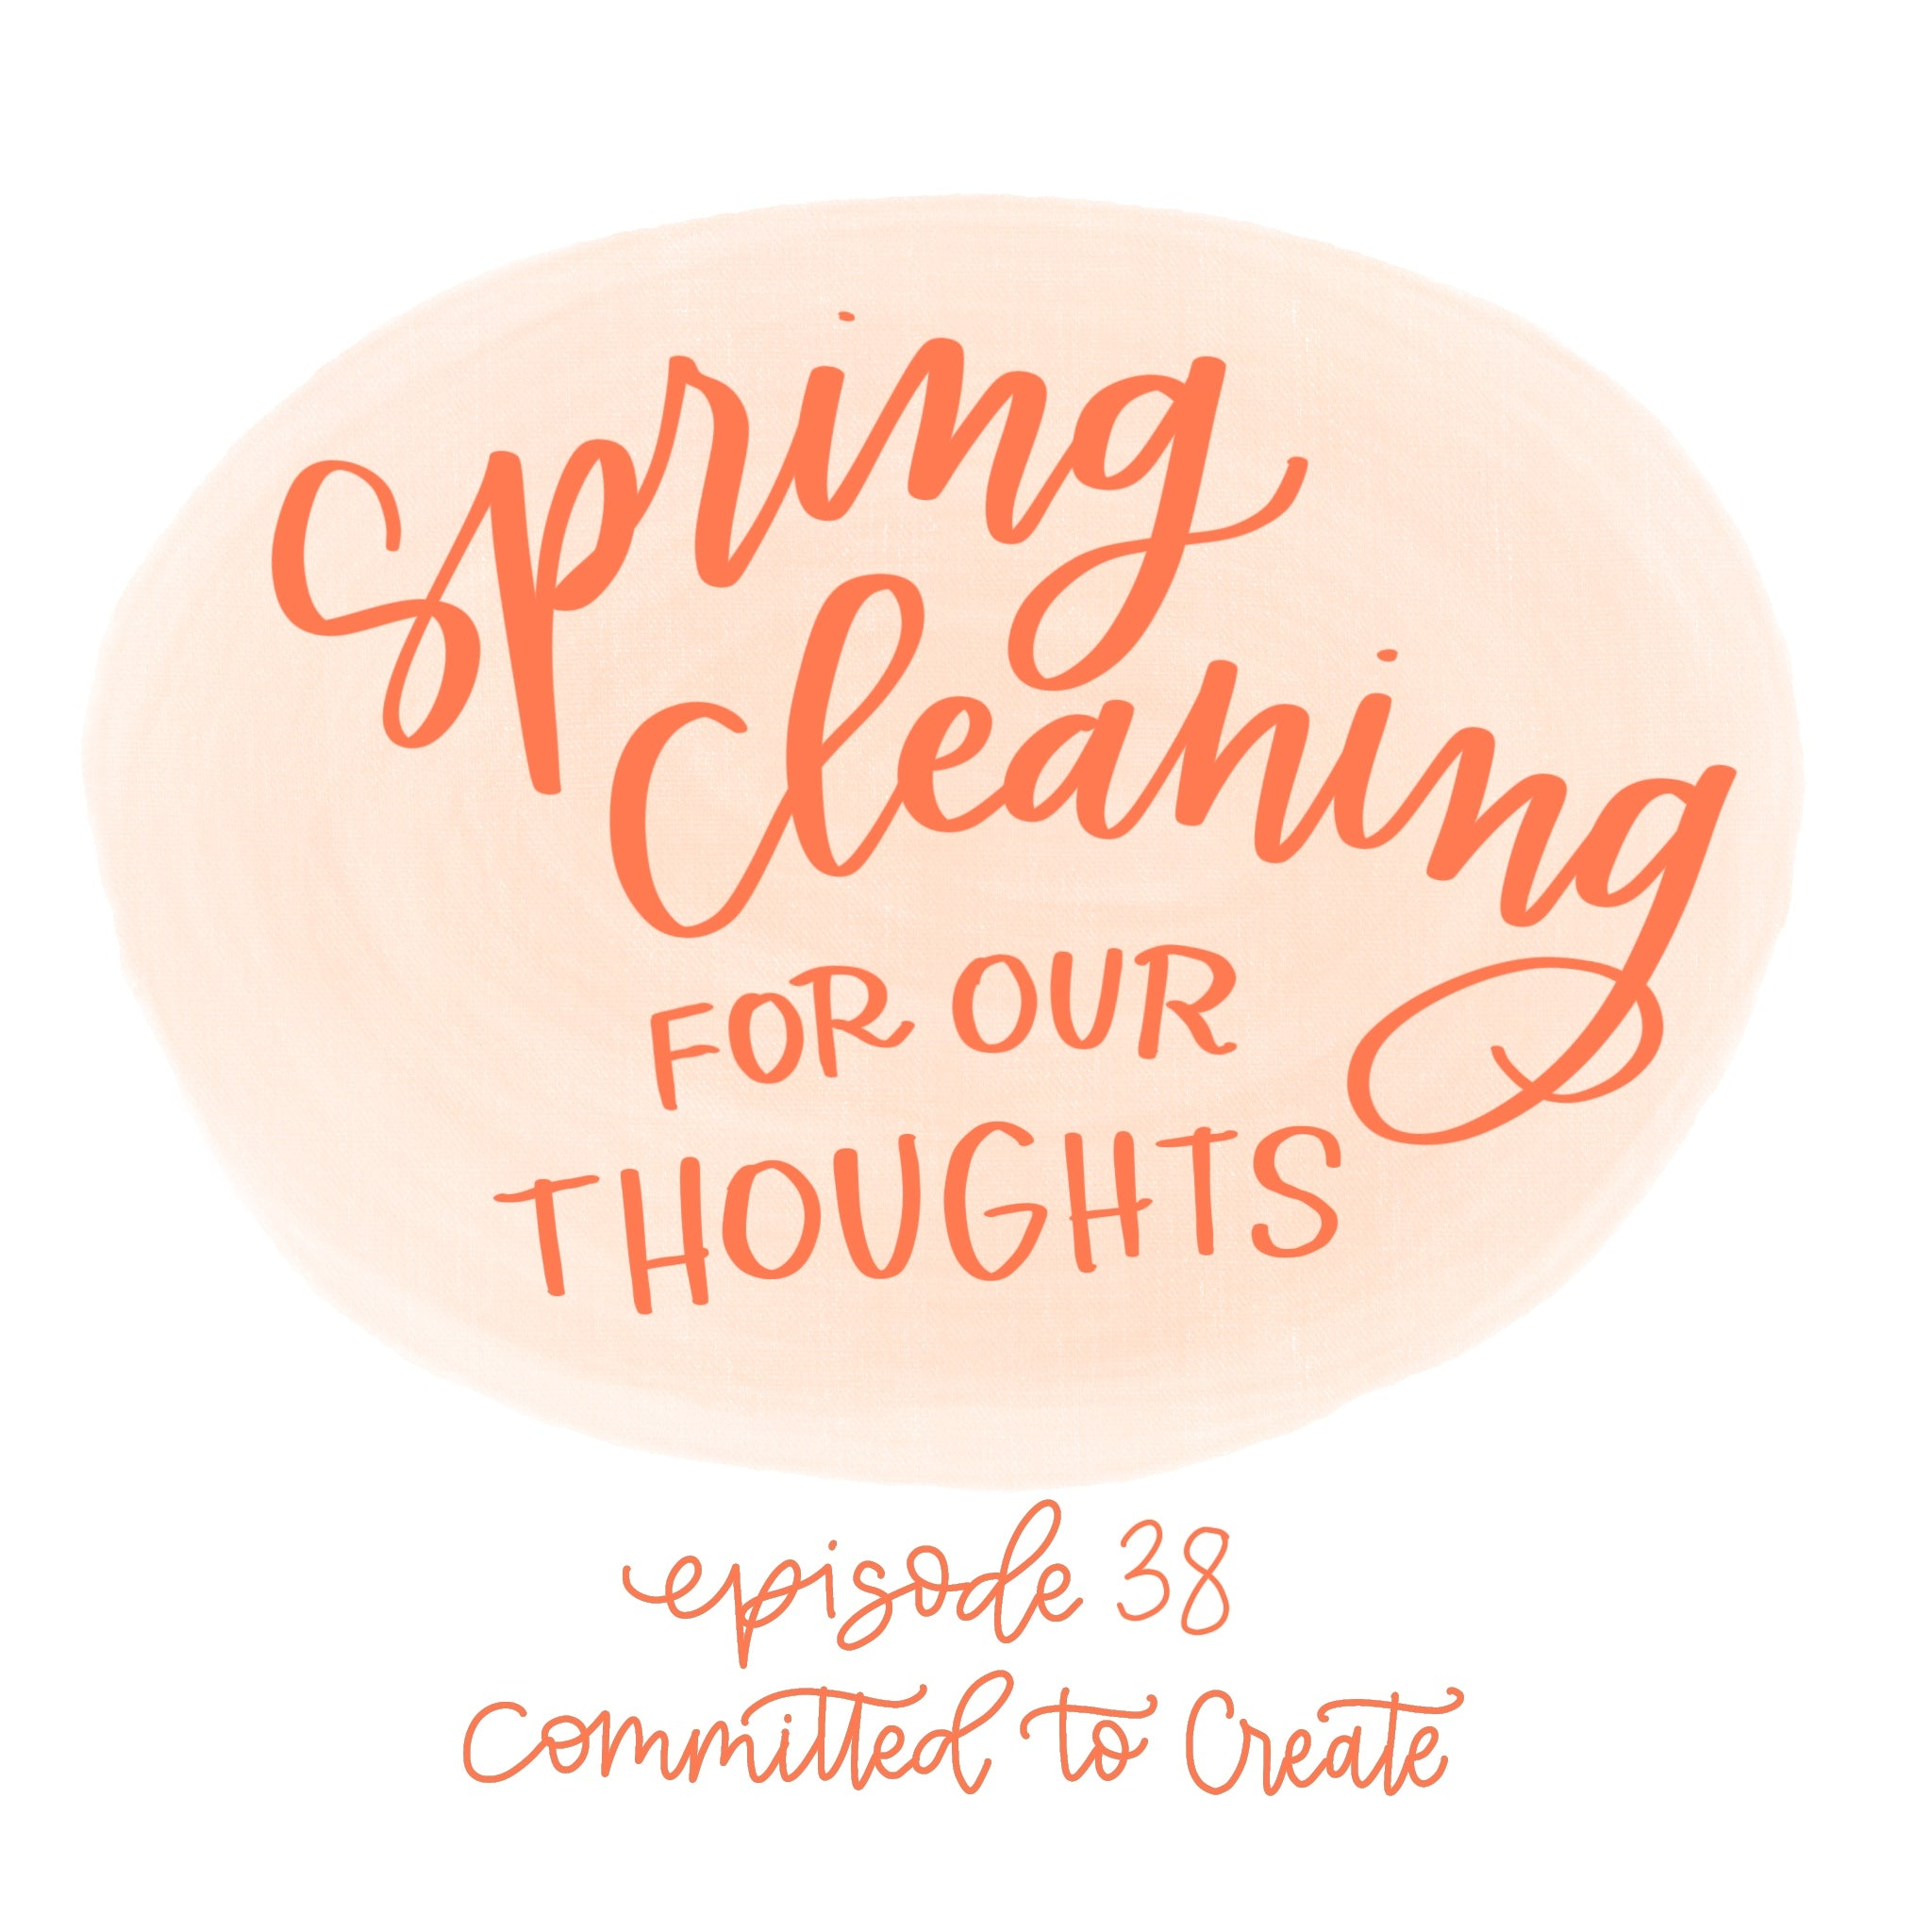 038: Spring Cleaning For Our Thoughts